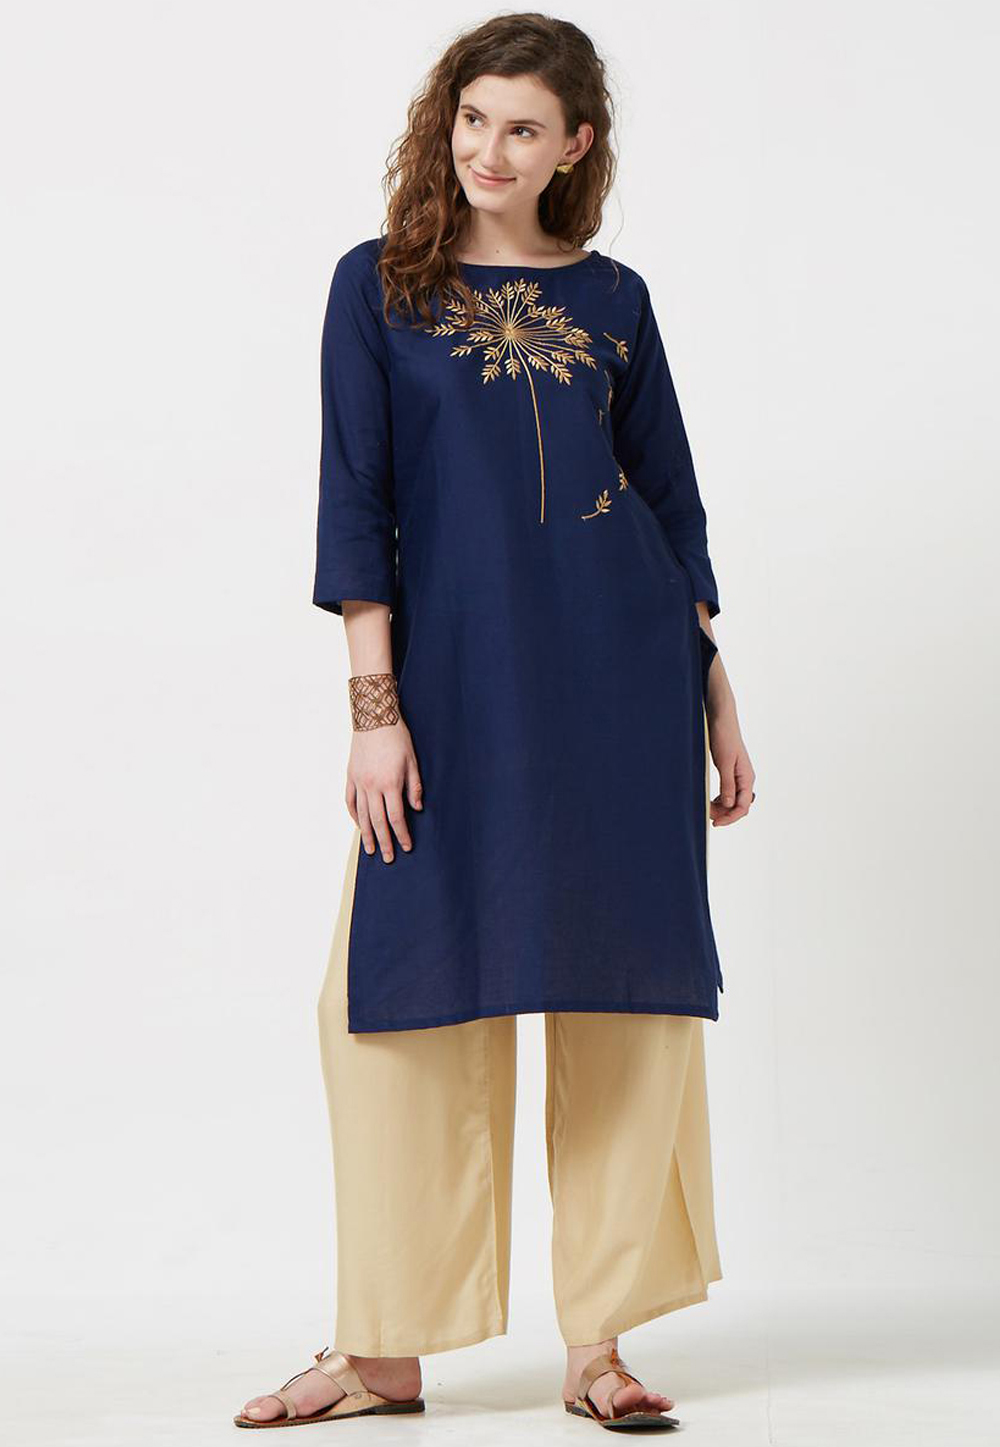 Navy Blue Rayon Readymade Tunic 188958